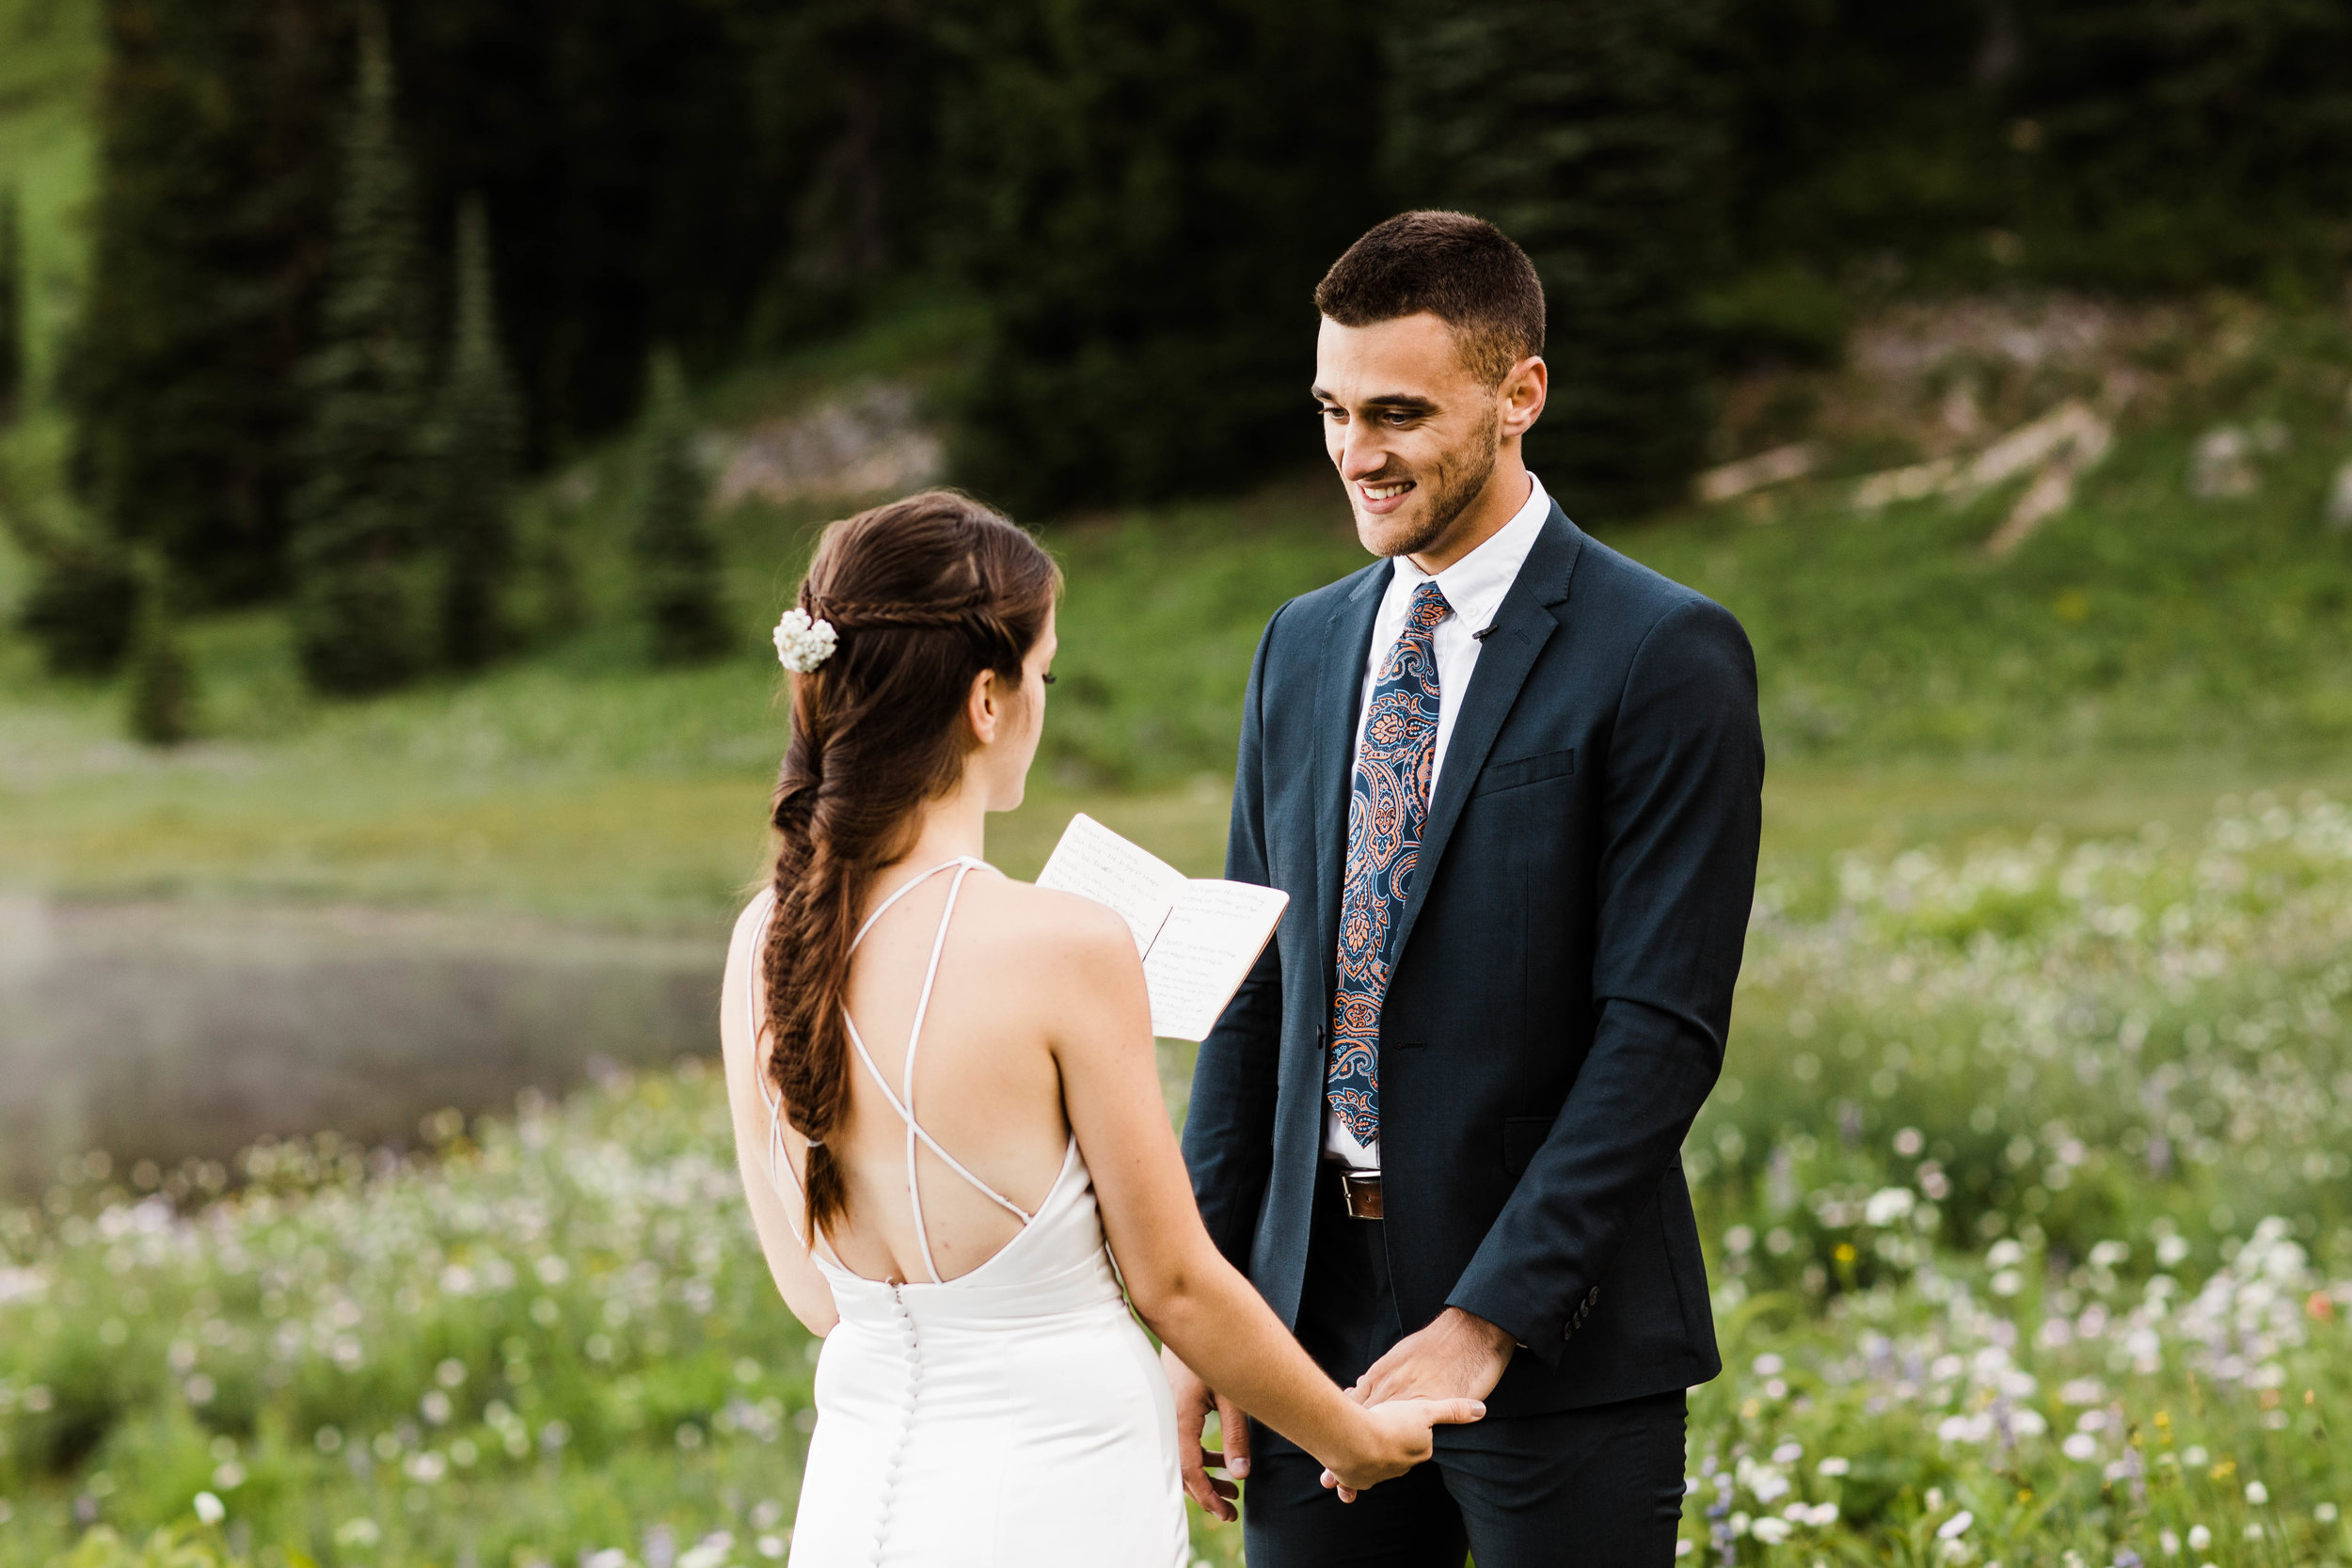 bride reading vows during Mount Rainier elopement ceremony in the mountains | Washington national park adventure wedding